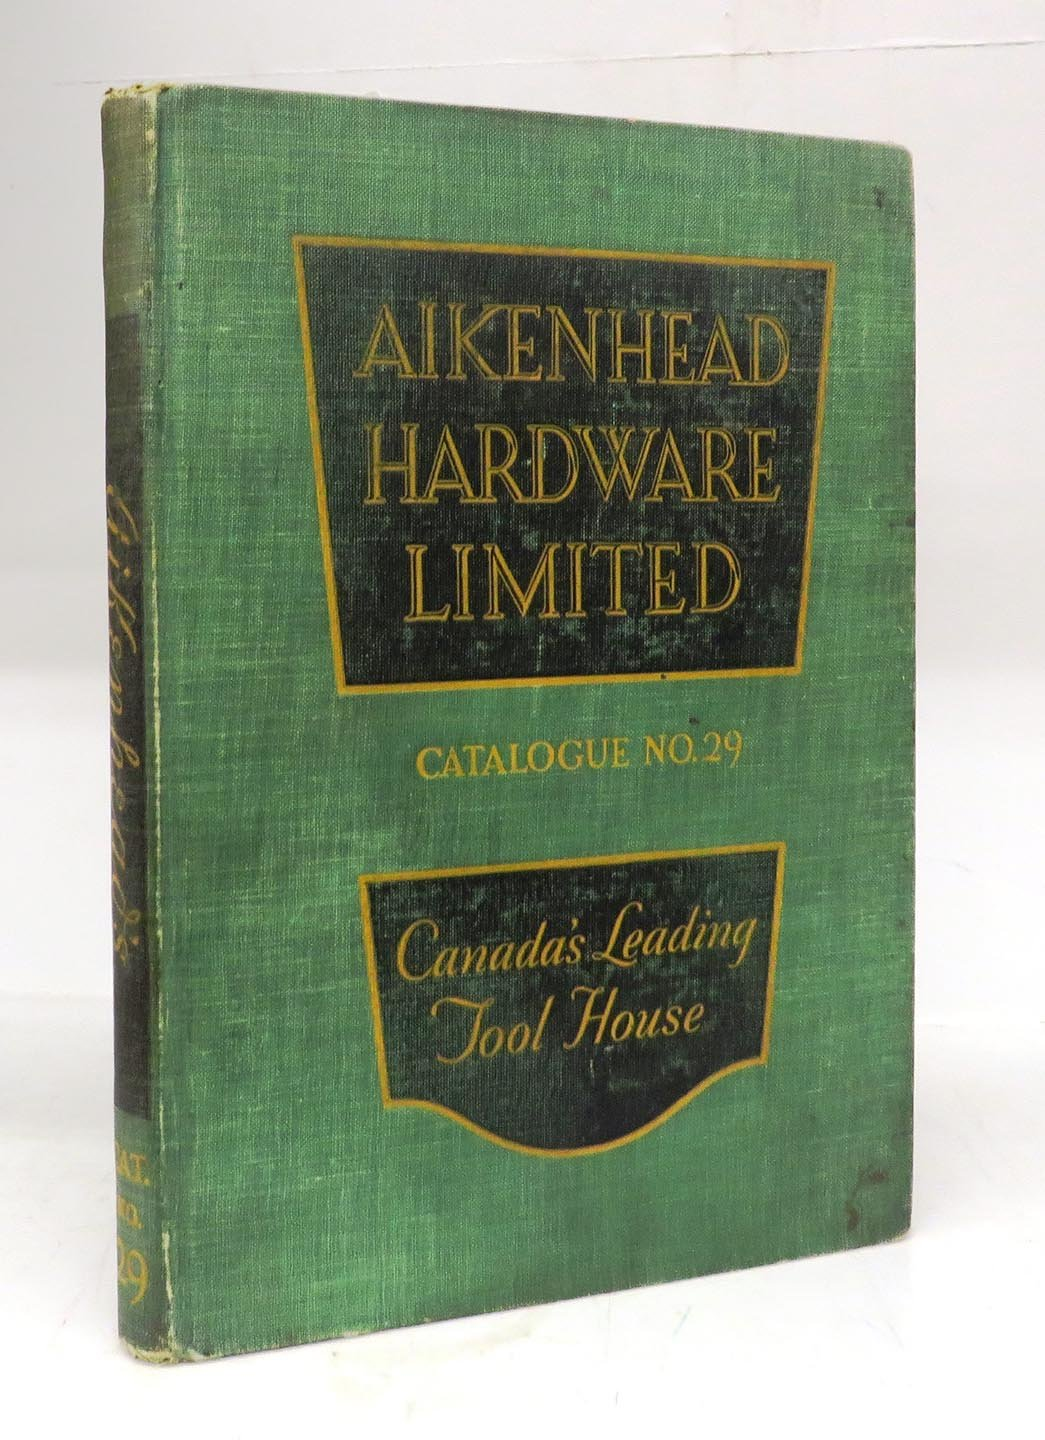 Aikenhead Hardware Catalogue No. 29: Tools, Factory Supplies, Contractors' Equipment